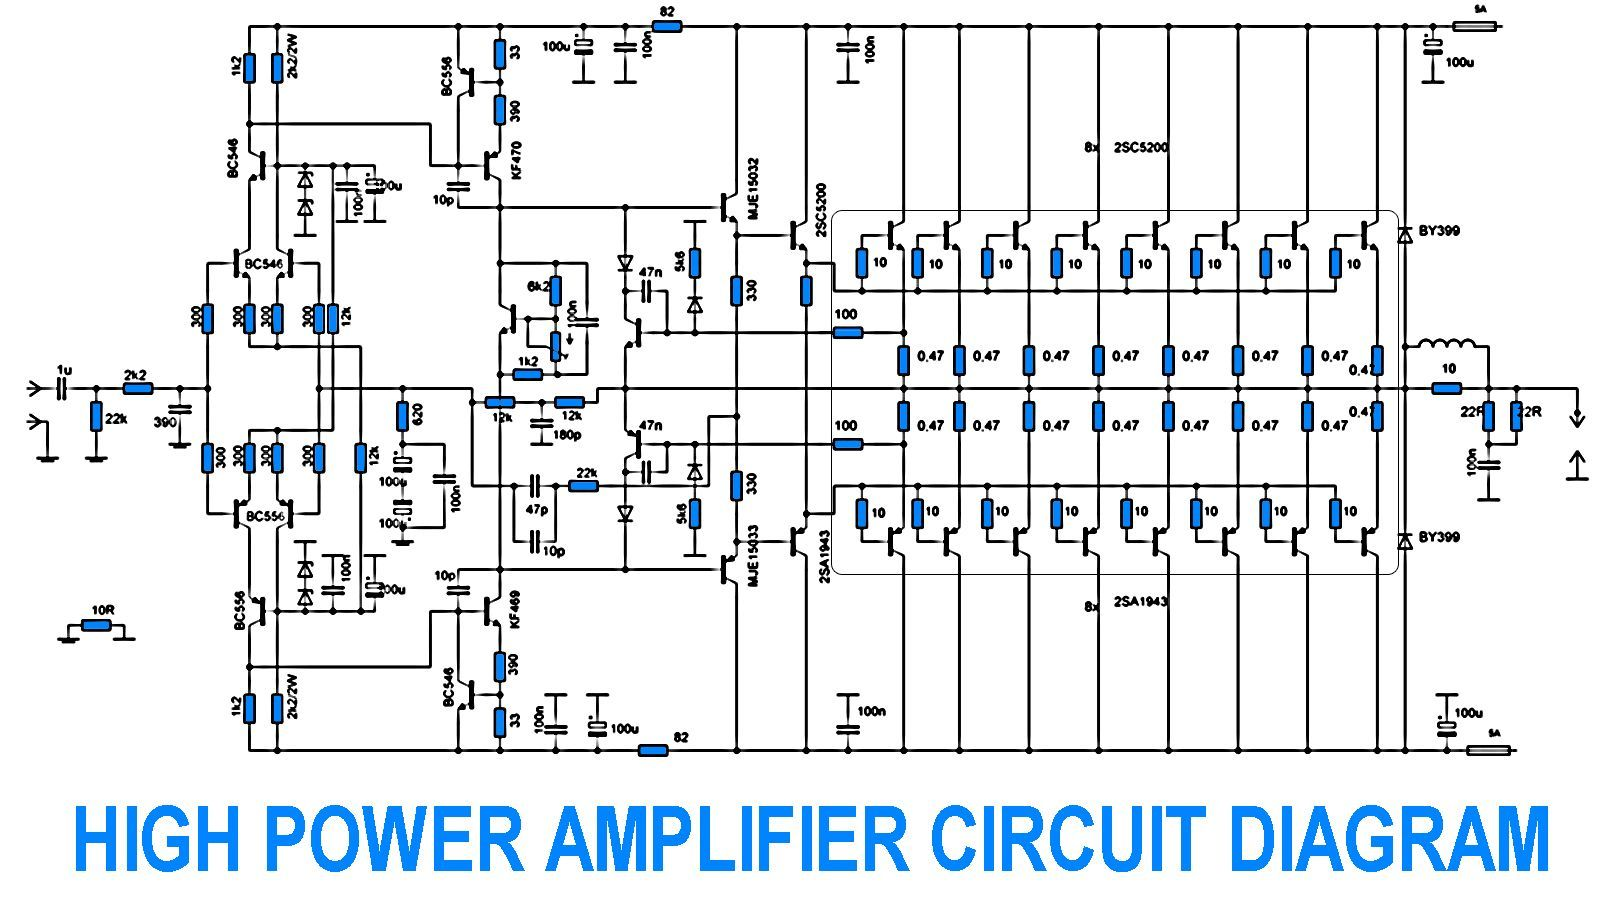 1000 watts amplifier circuit diagrams [ 1600 x 905 Pixel ]